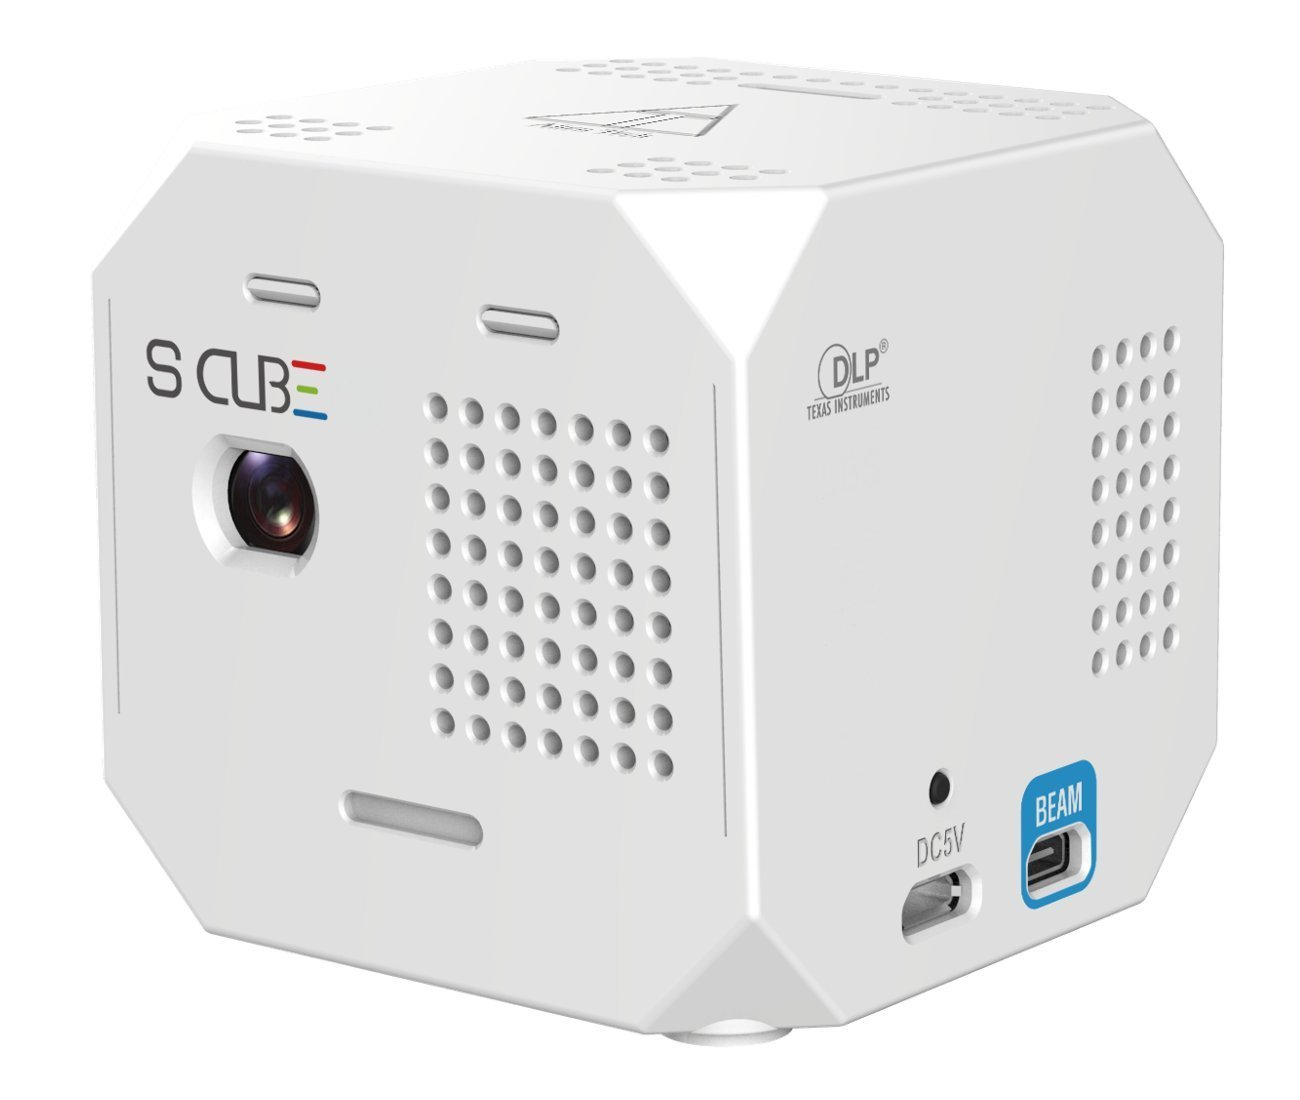 alientech-s-cube-fhd-hologram-projection-mapping-wifi-ready-1000-lumens-100-ansi-protection-cage-remote-mhl-hdmi-tripod-cradle-1080p-pico-projector-white